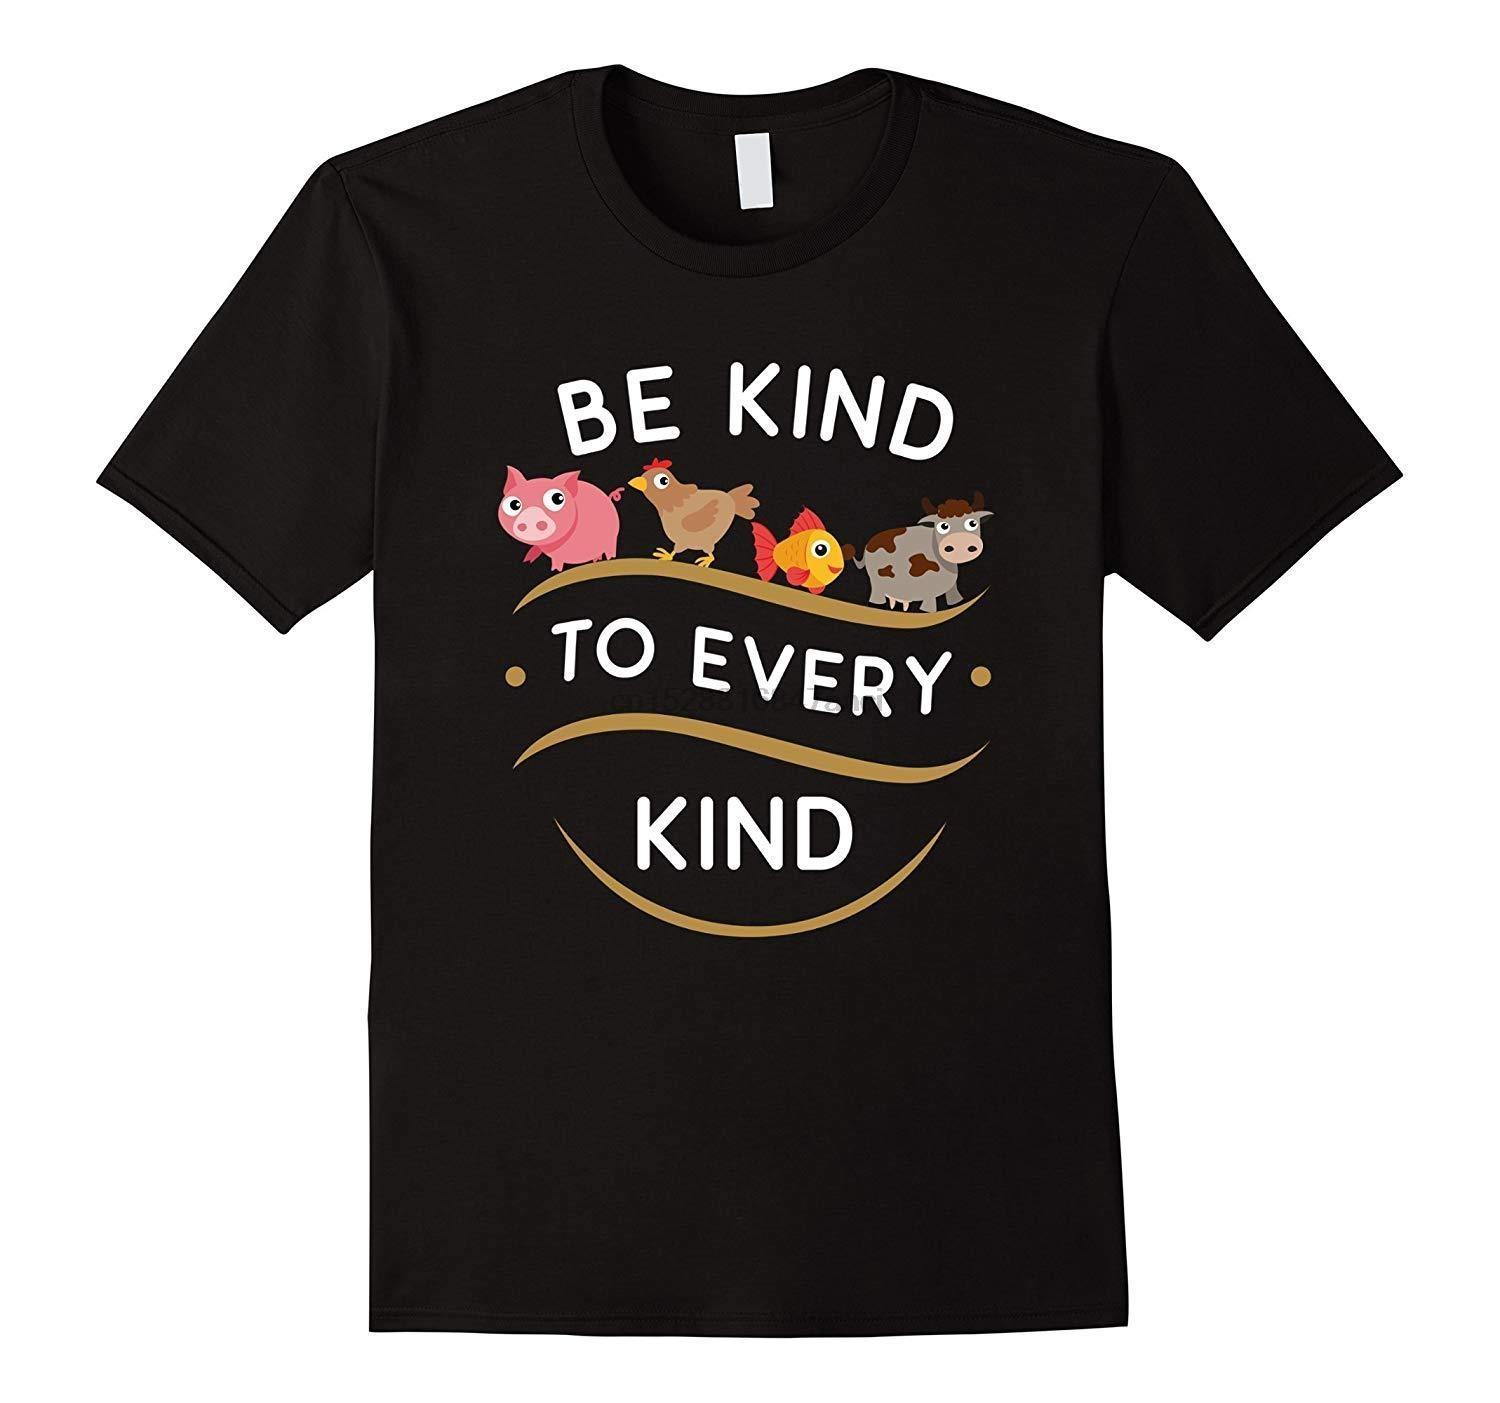 Be Kind To Every Kind Vegetarian Funny Animals Black T-shirt Cartoon t shirt men Unisex New Fashion tshirt free shipping funny